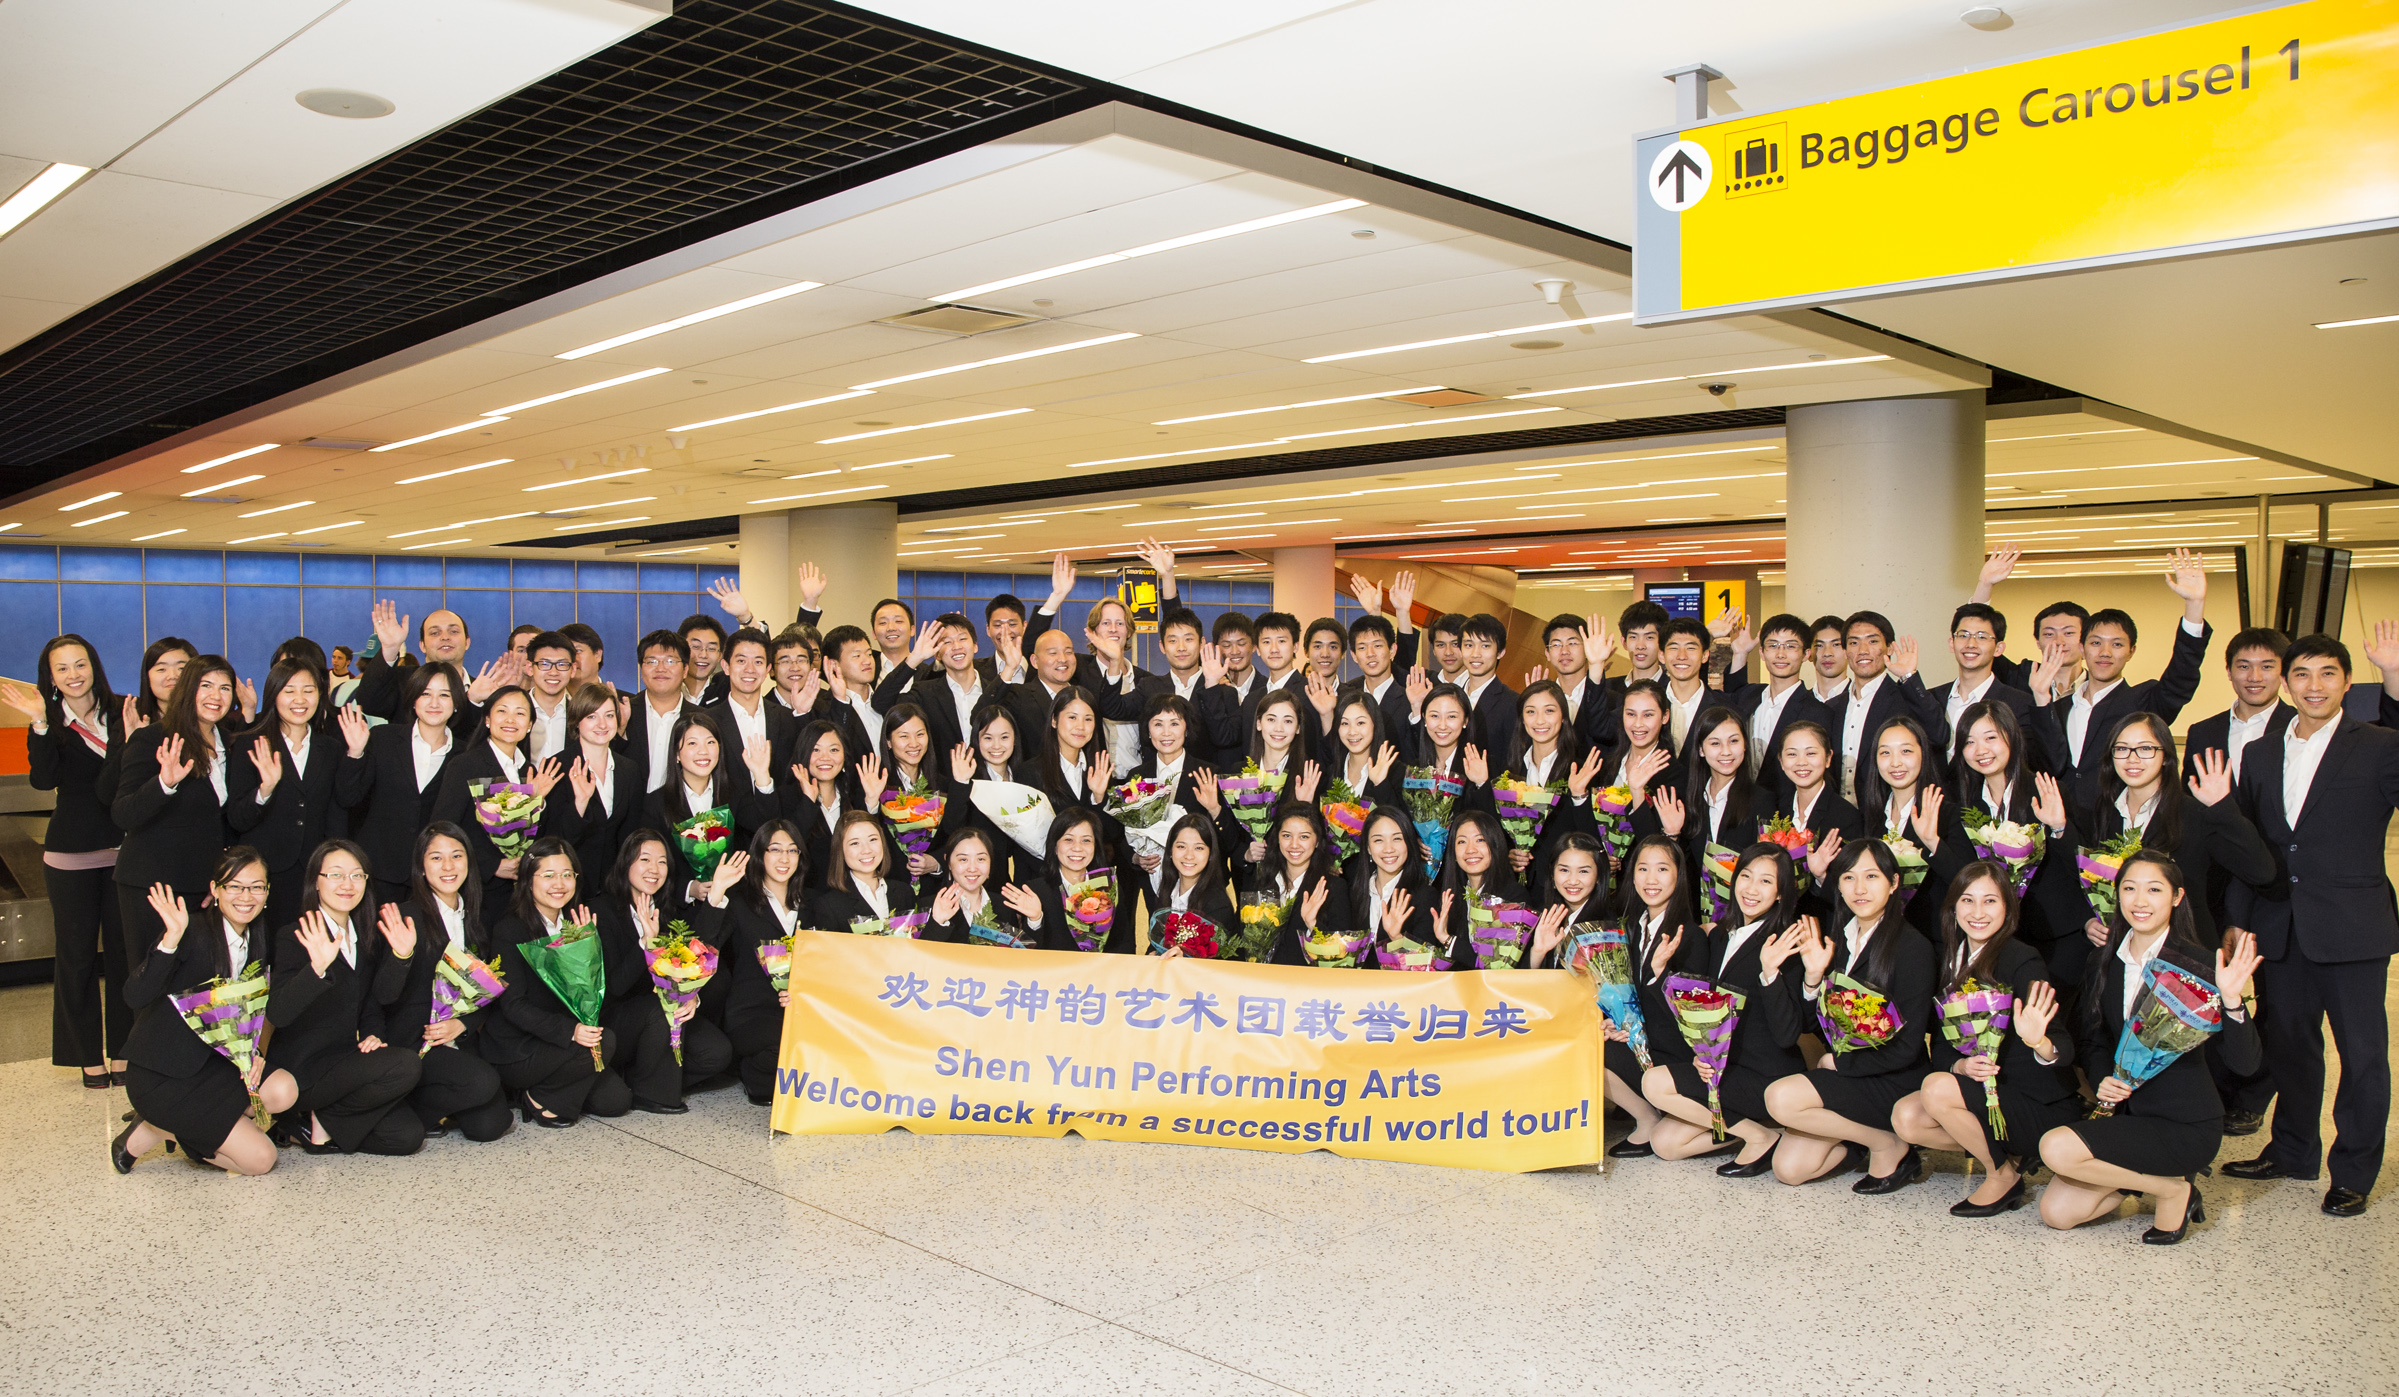 Shen Yun's International Company Returns to New York After World Tour